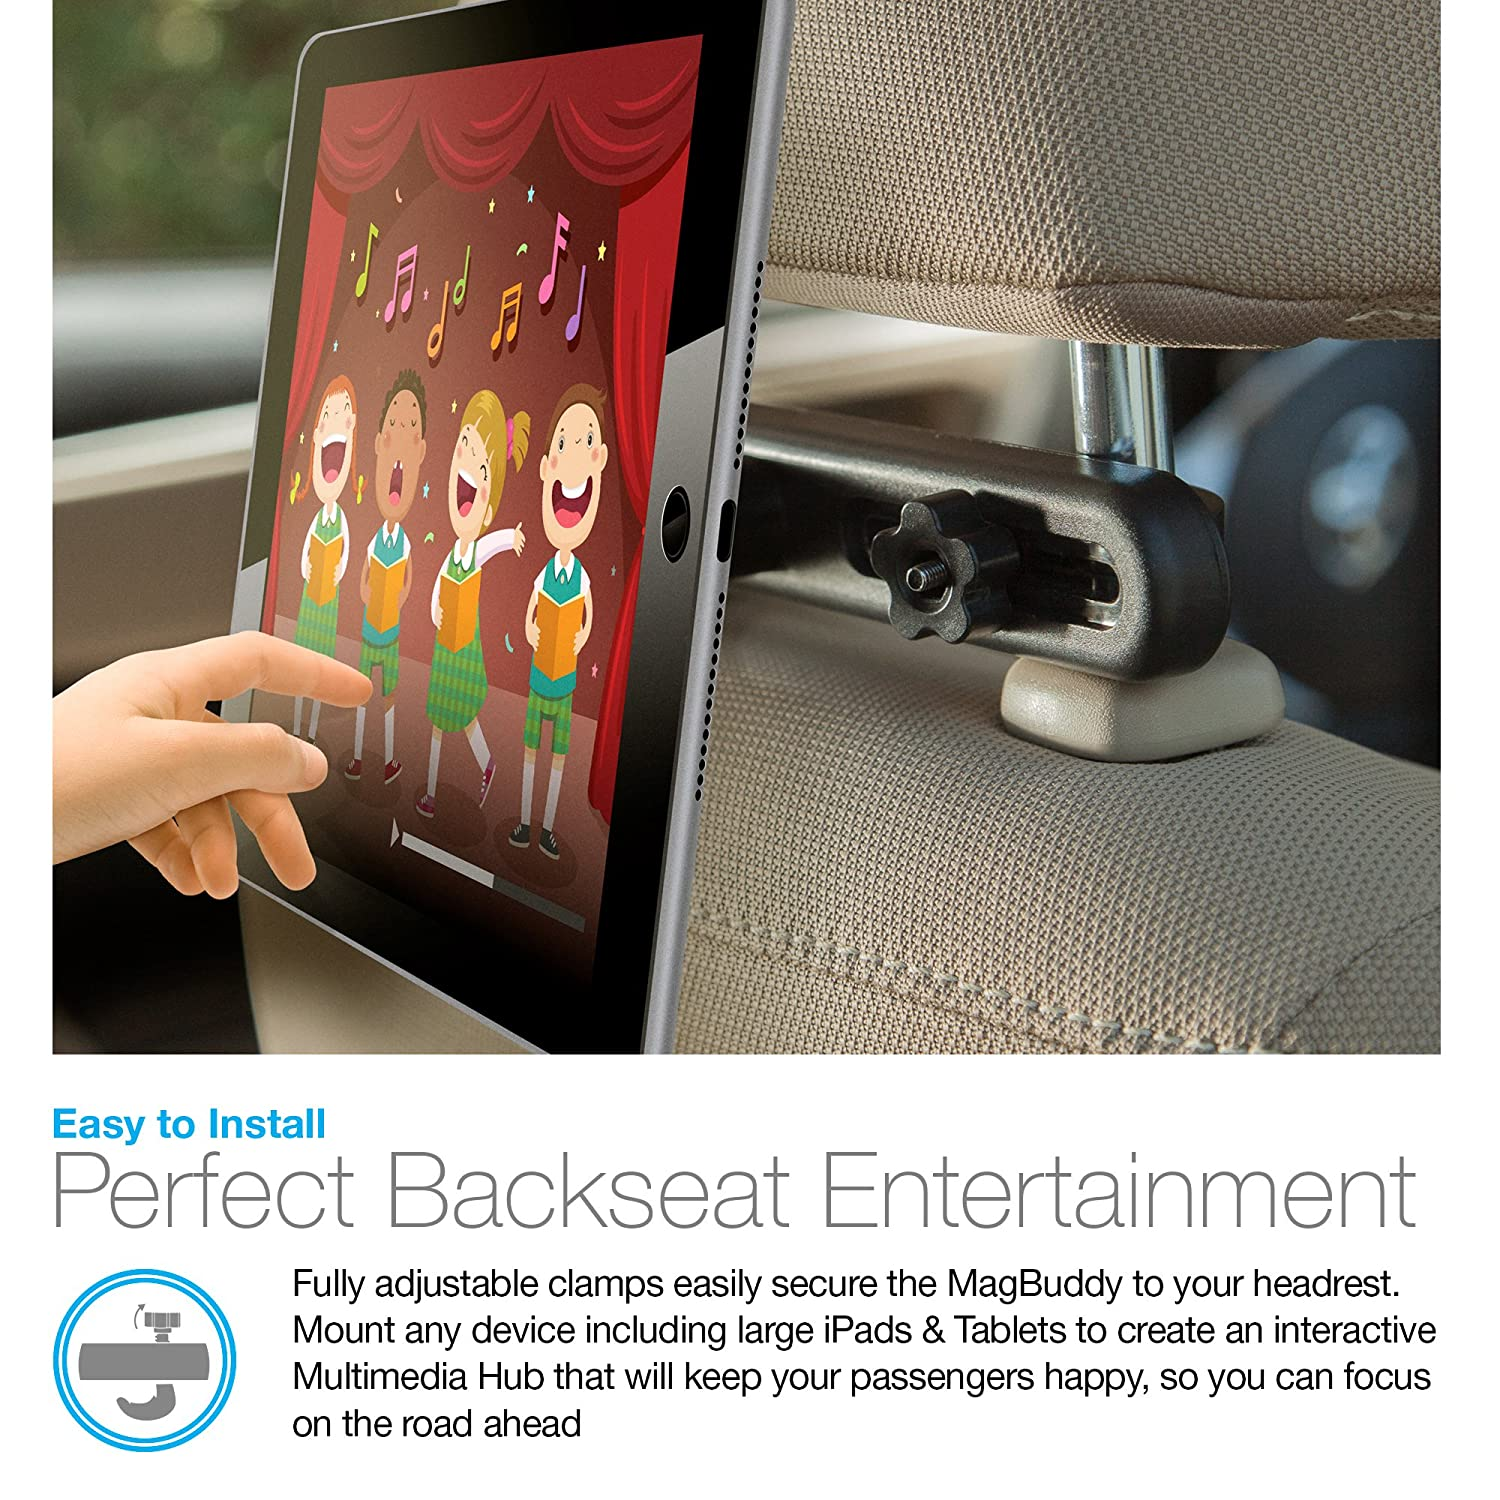 Perfect Backseat Entertainment, Insta-Lock Technology, Fully Adjustable Compatible for Smartphones/Tablets / eReaders/iPads + Other Devices: Cell Phones & ...